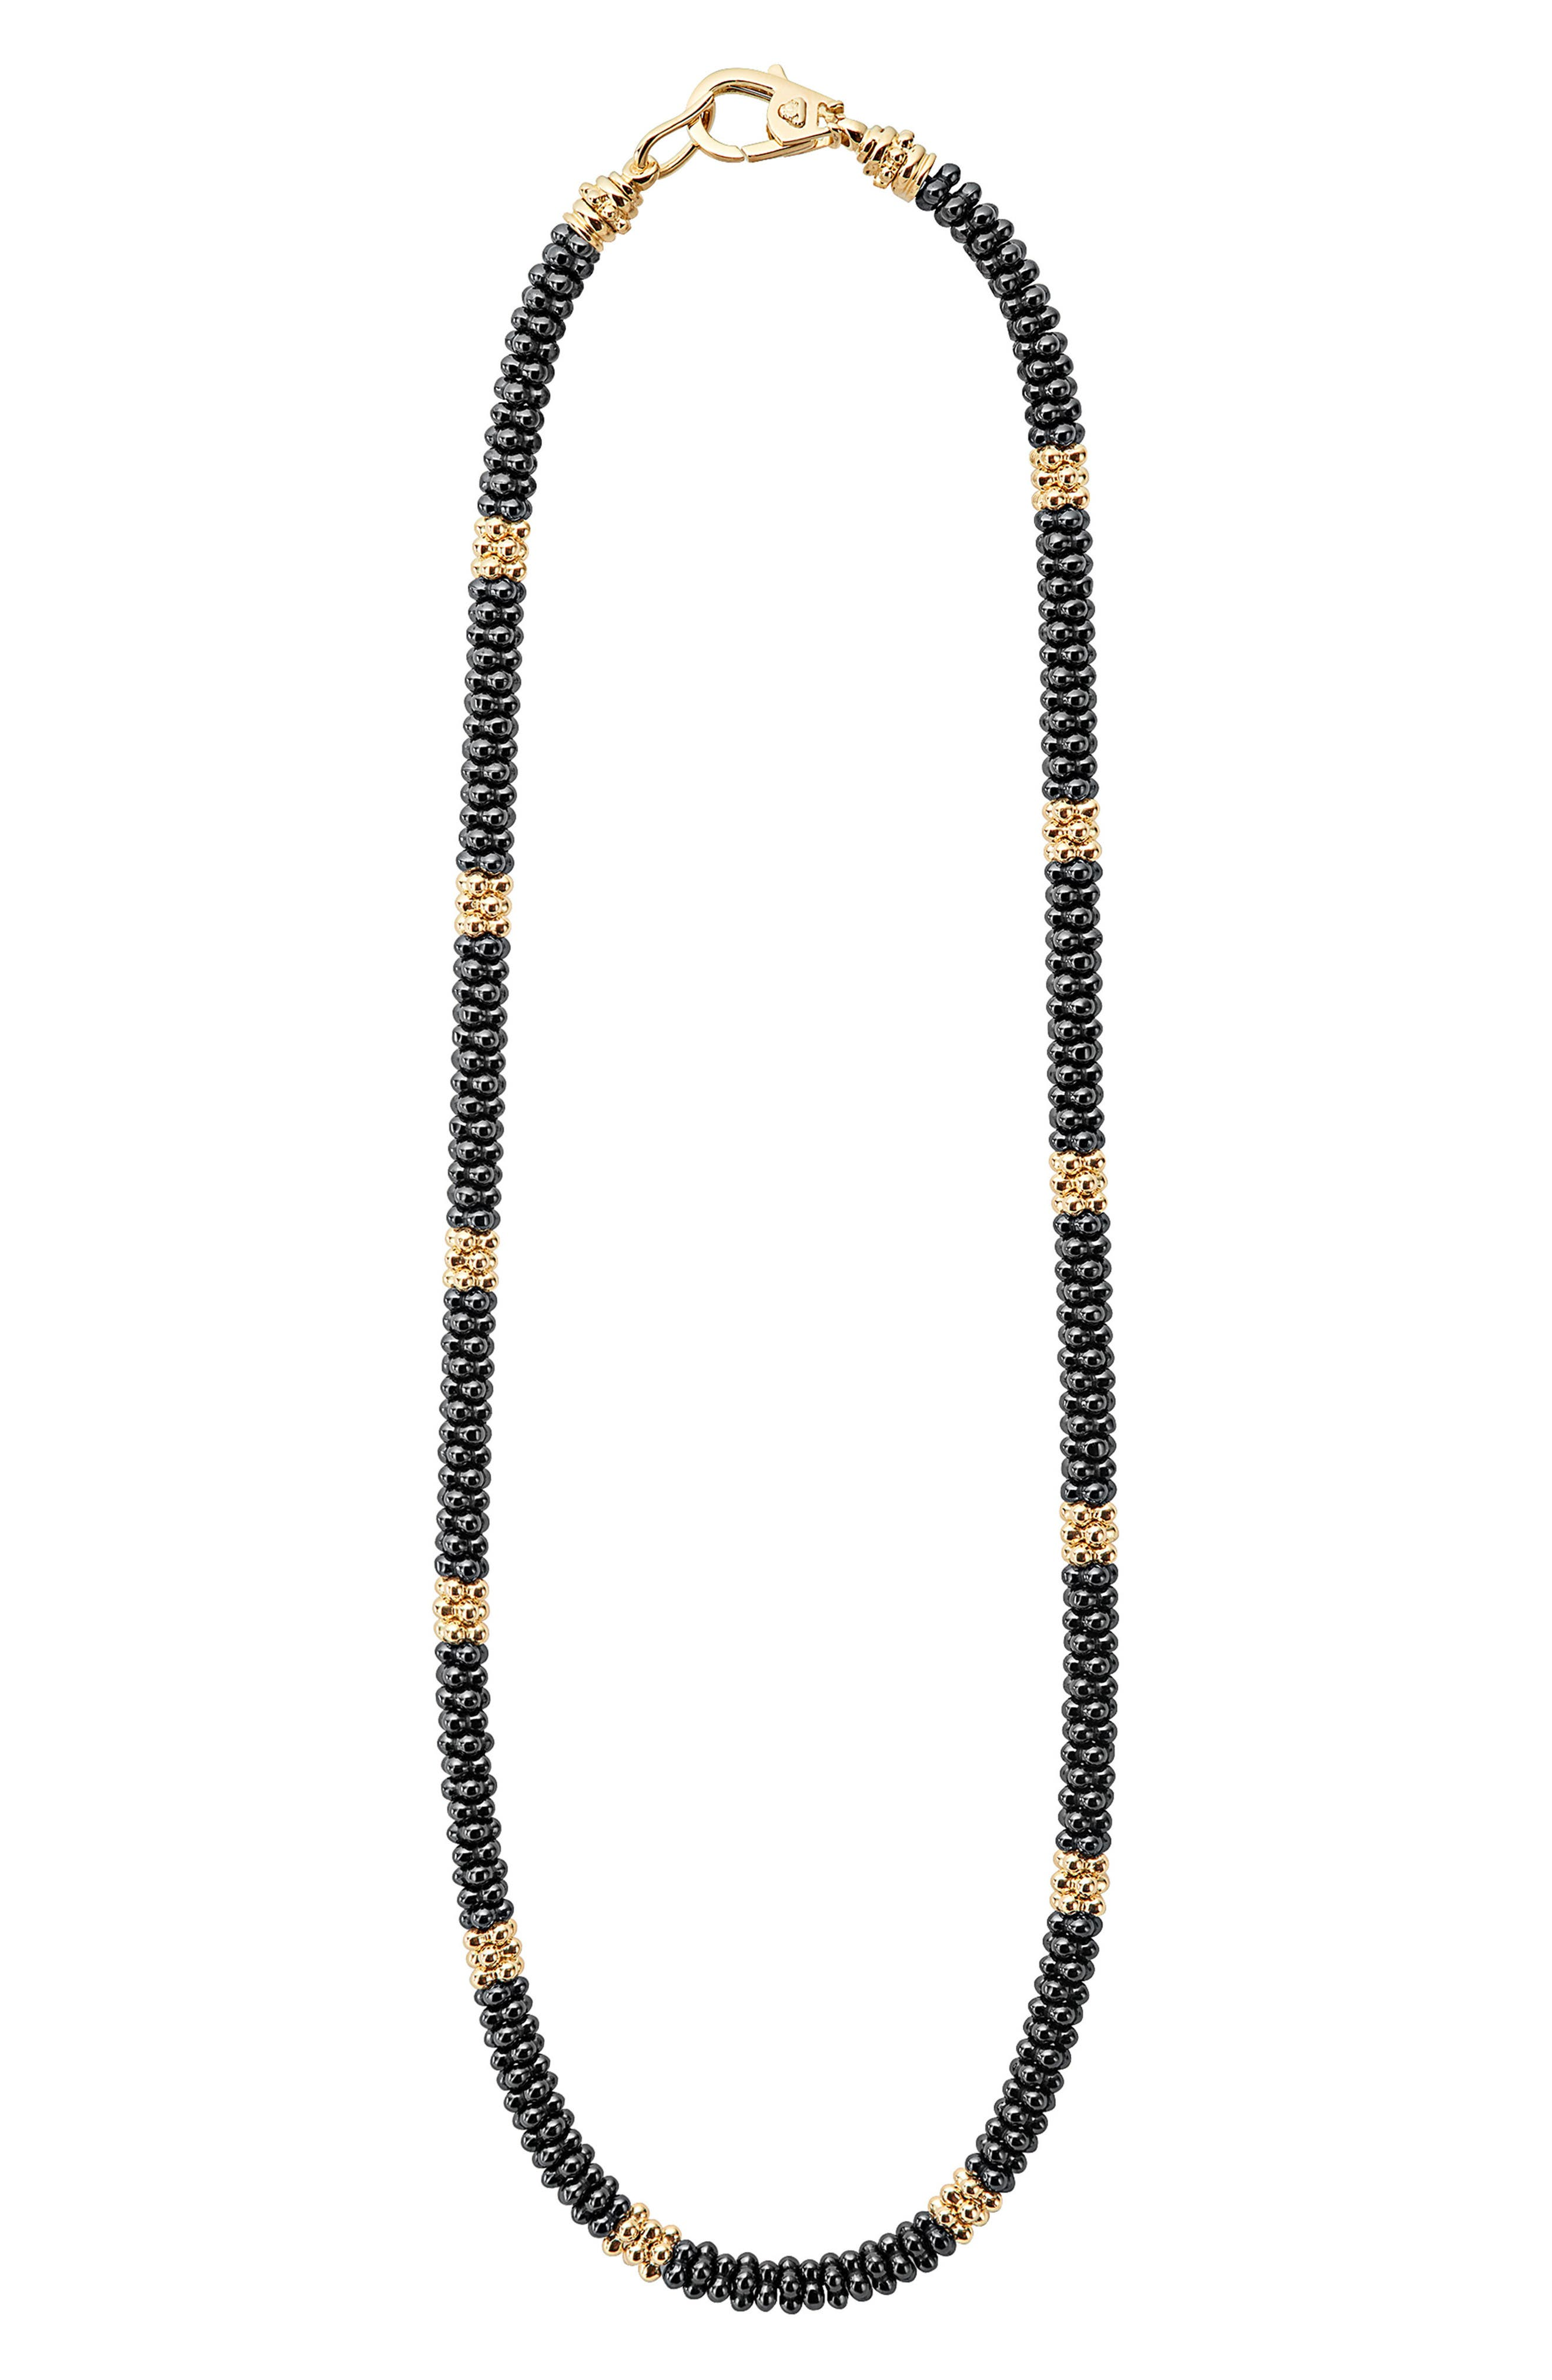 18K Gold & Black Caviar Bead Rope Necklace,                         Main,                         color, Gold